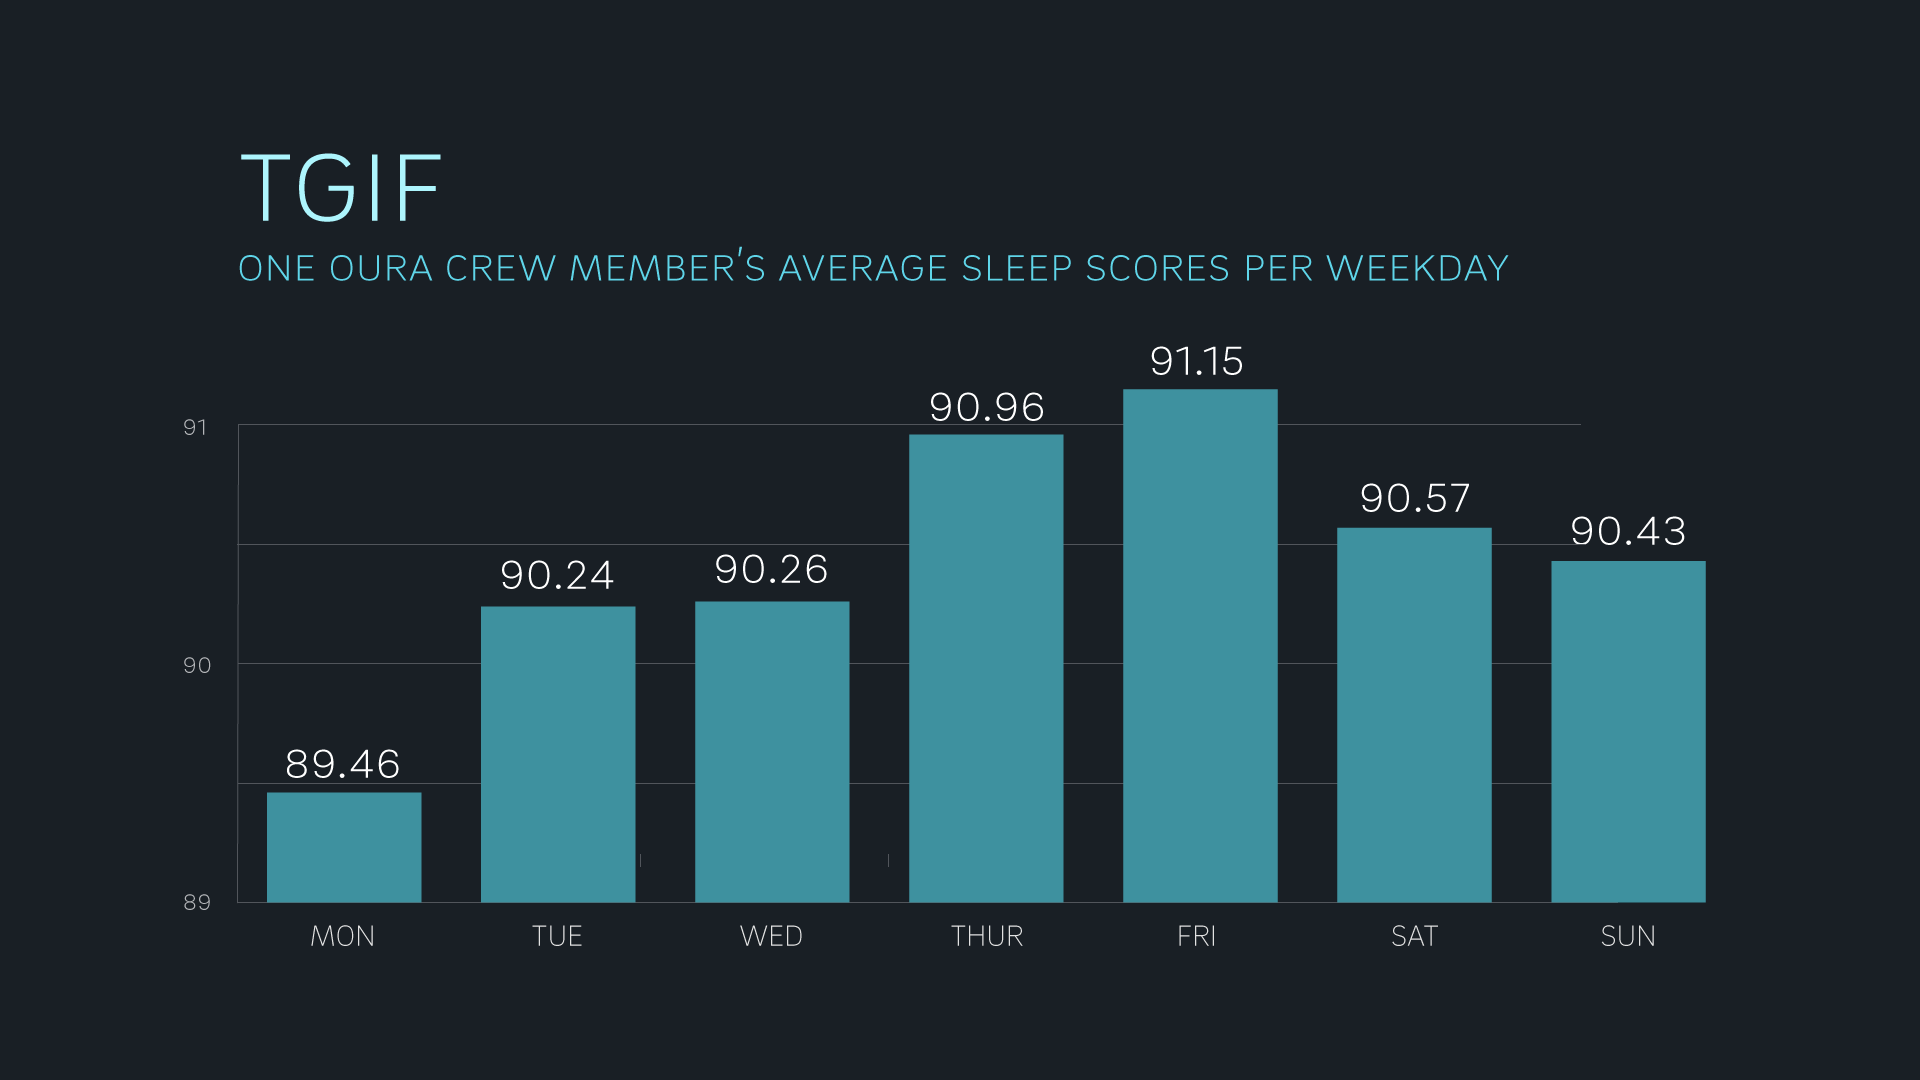 Sleep score per weekday graph